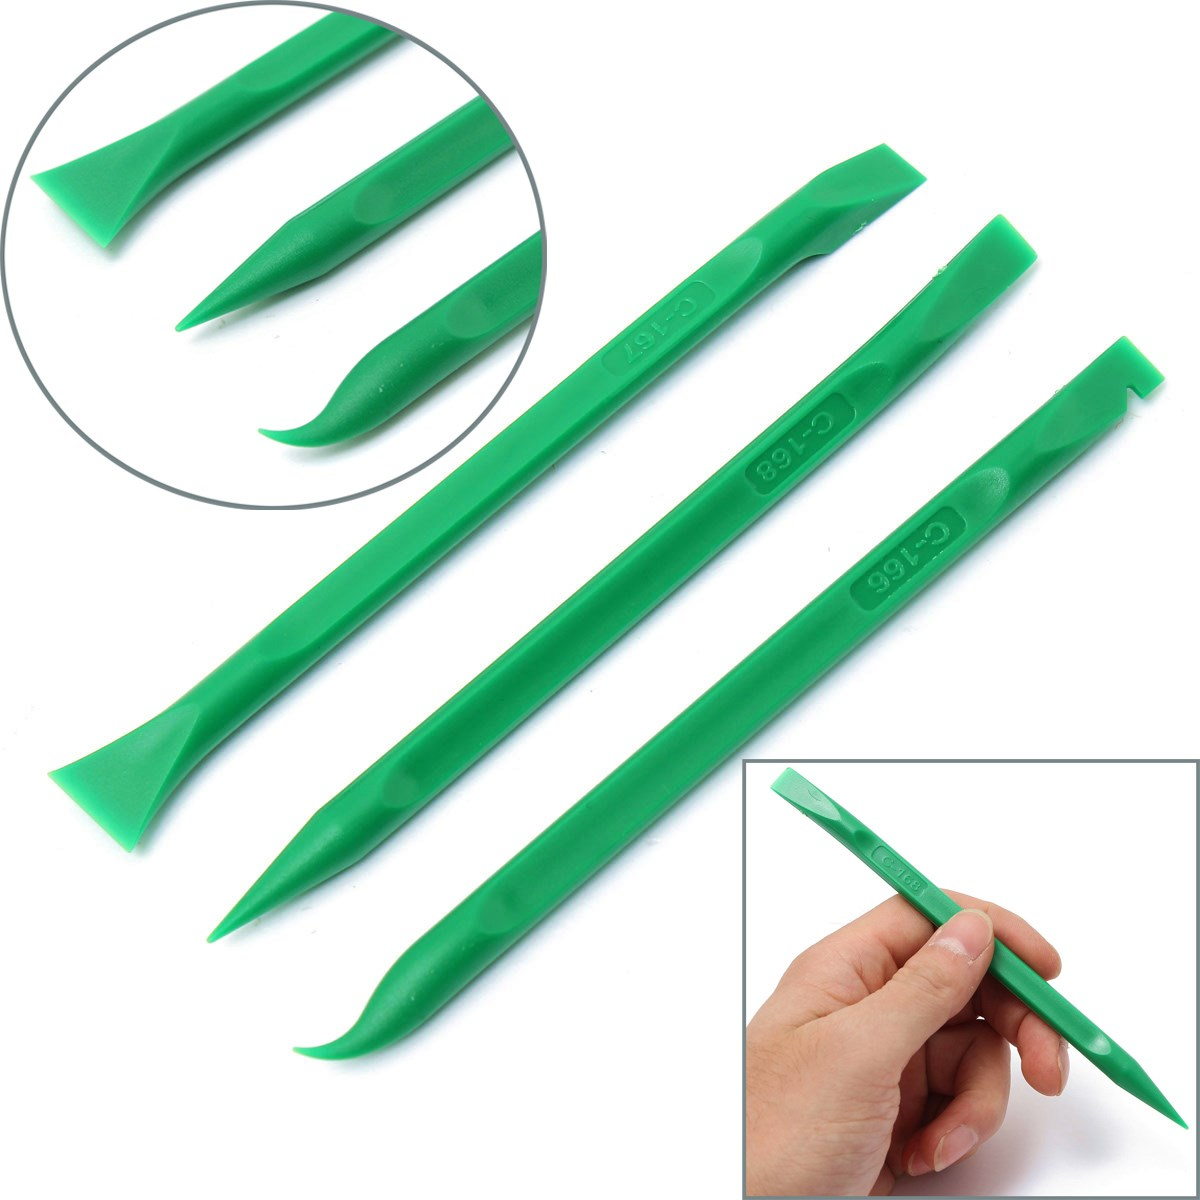 Durable 3 pcs/set universal Spudger Mobile Phone Opening Repairing Tool Pro DIY for iPhone for Smart Cellphone Tablet all Device